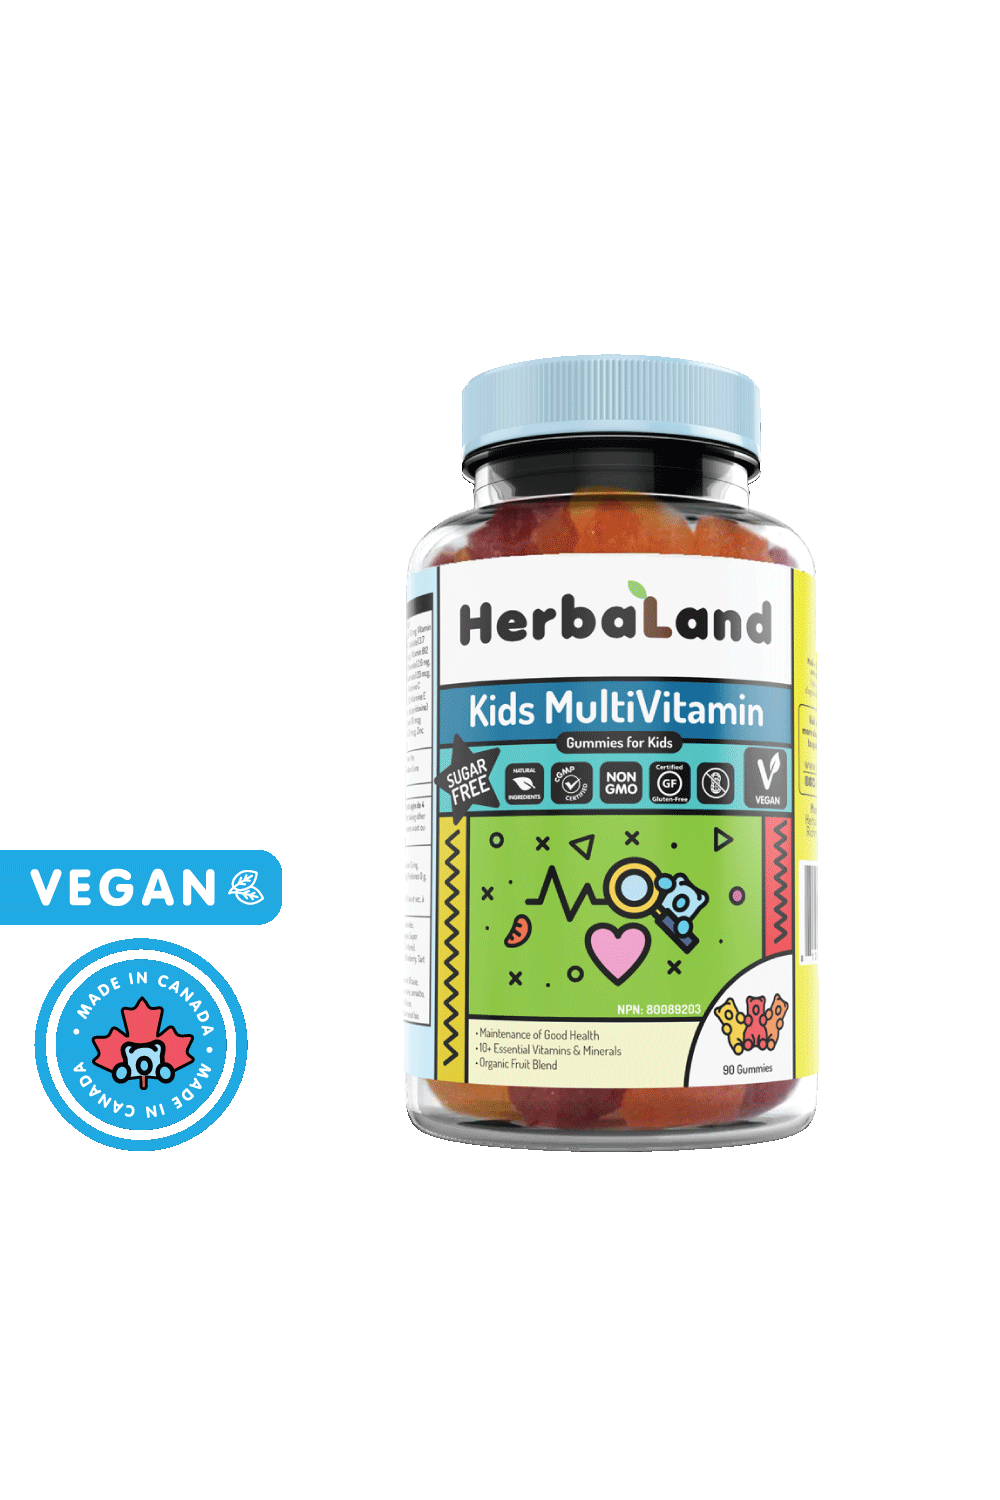 Herbaland Gummies for Kids: Multivitamin 90s